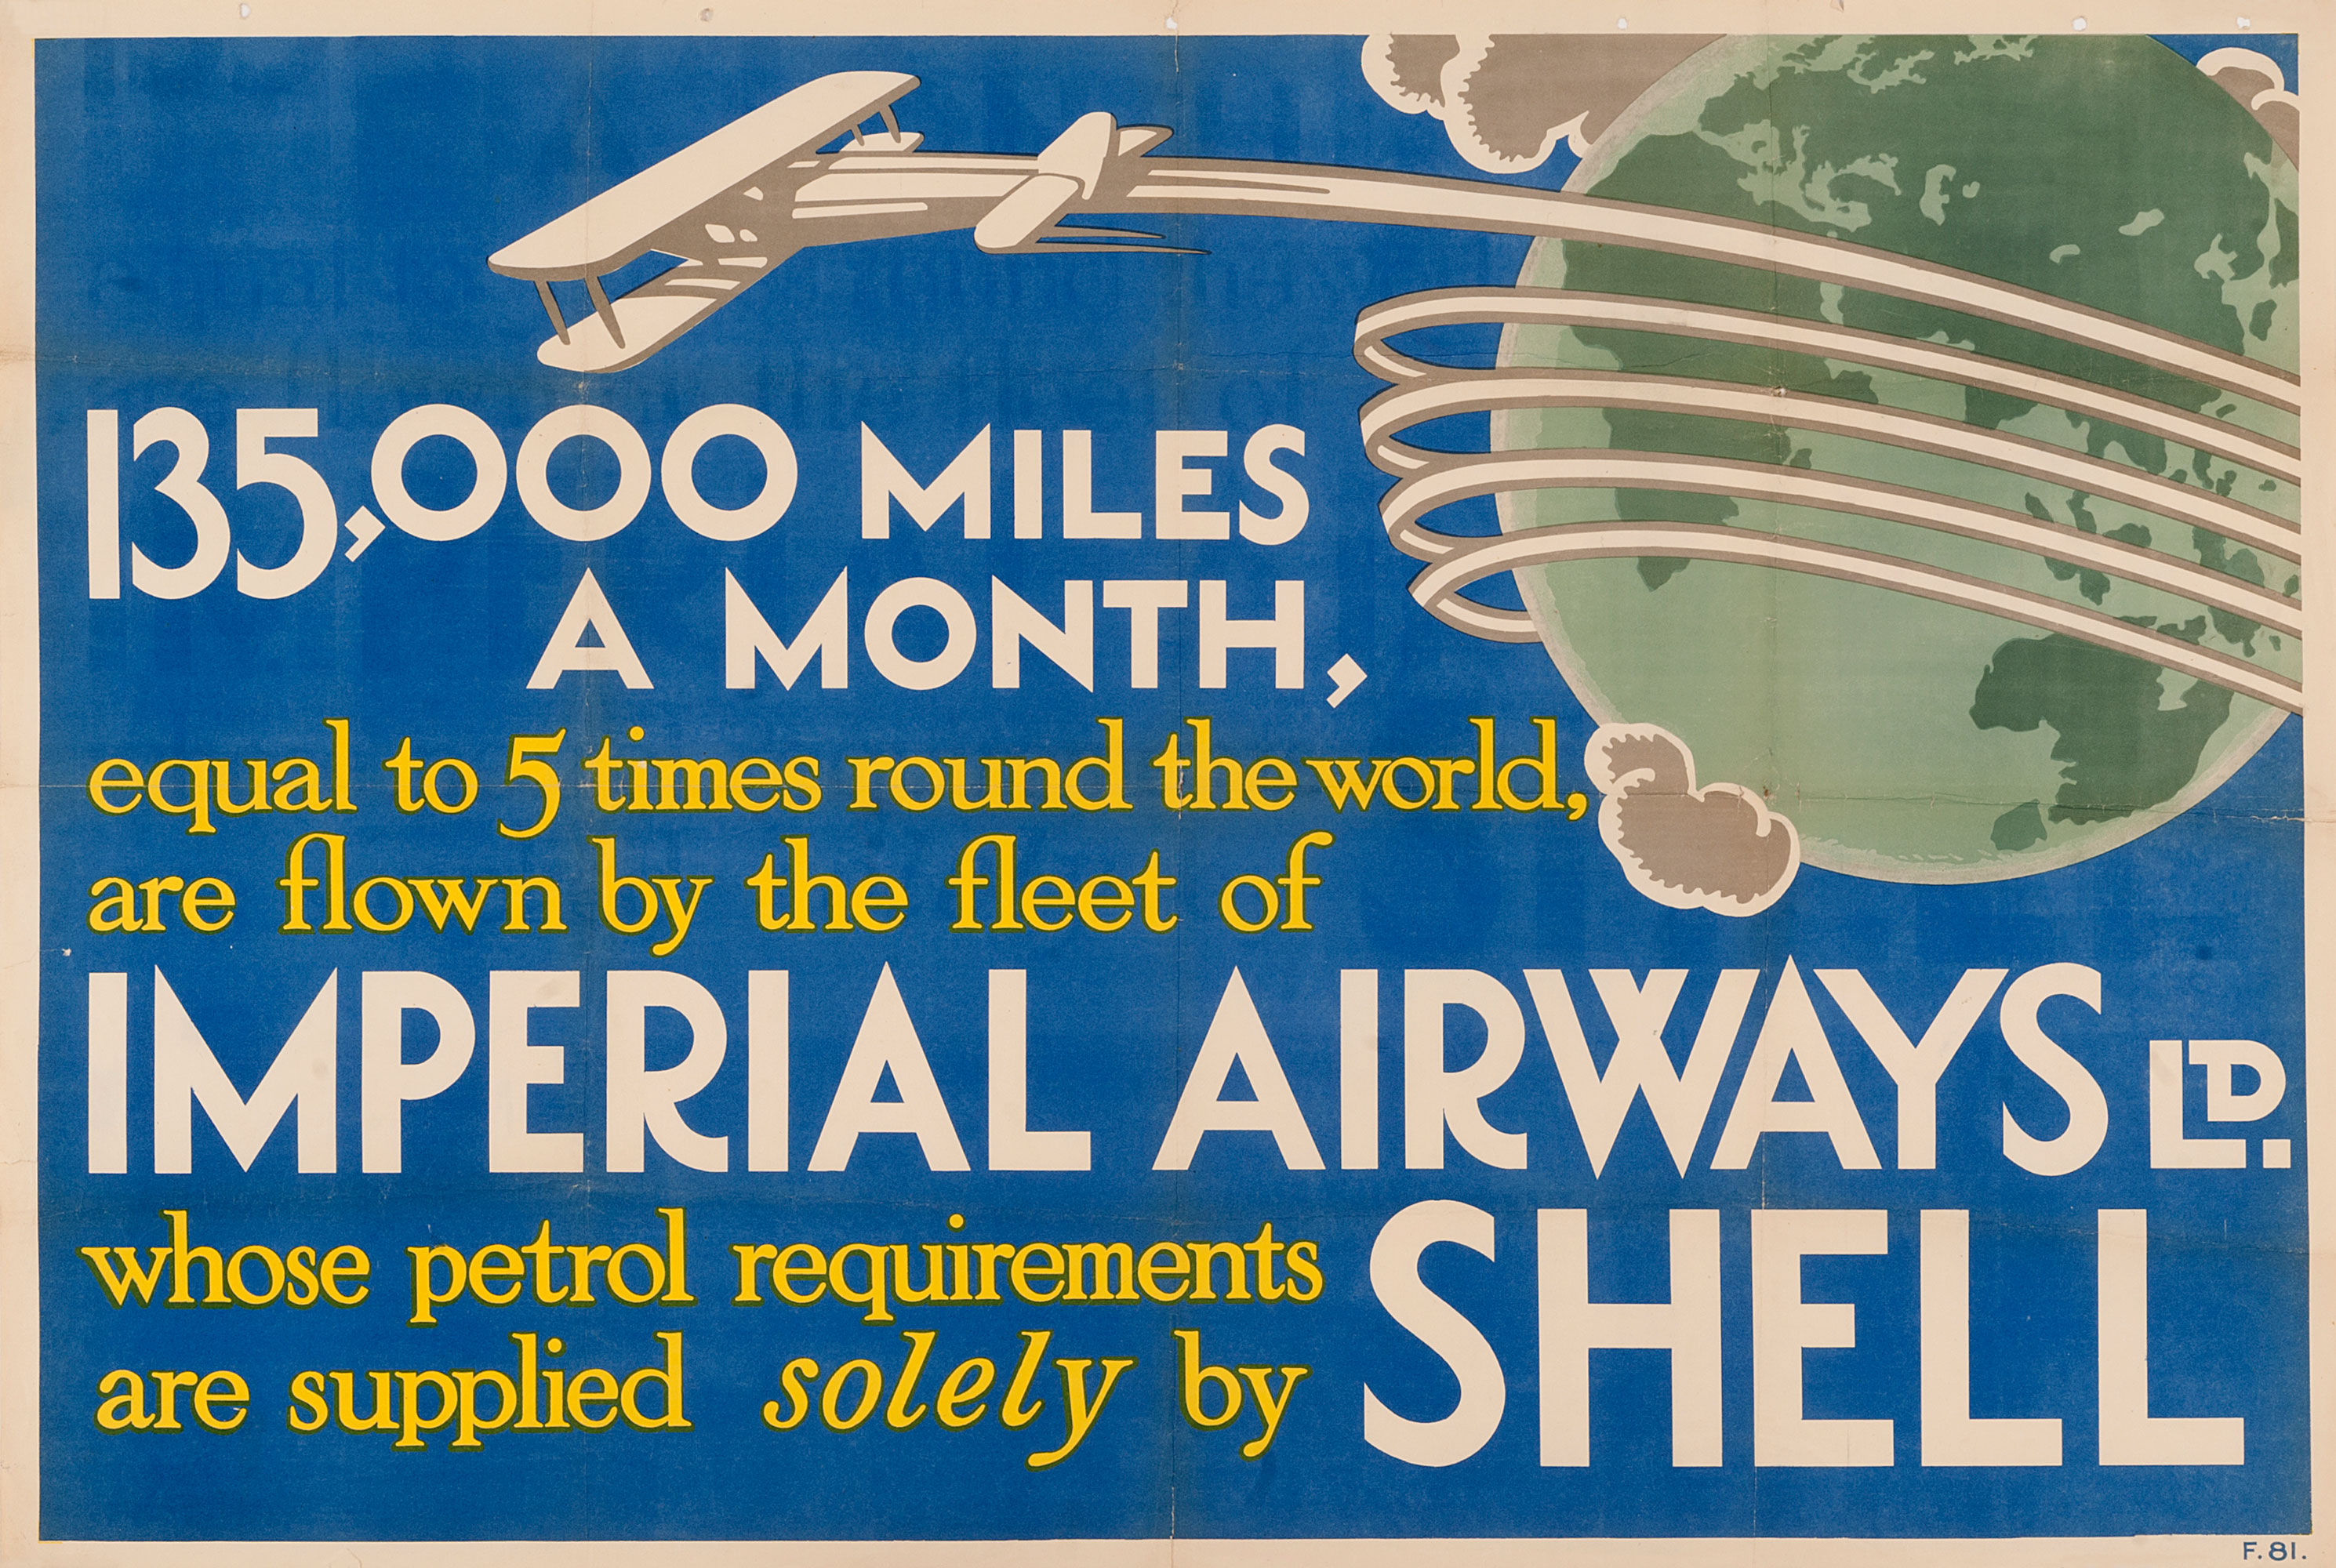 """Shell poster number 81, Imperial Airways (1925), Shell Studio. Drawing of a 1920s plane flying around the world, text reads; """"135,000 miles a month, equal to 5 times round the world, are flown by the fleet of Imperial Airways Ltd. whose petrol requirements are supplied solely by Shell."""""""